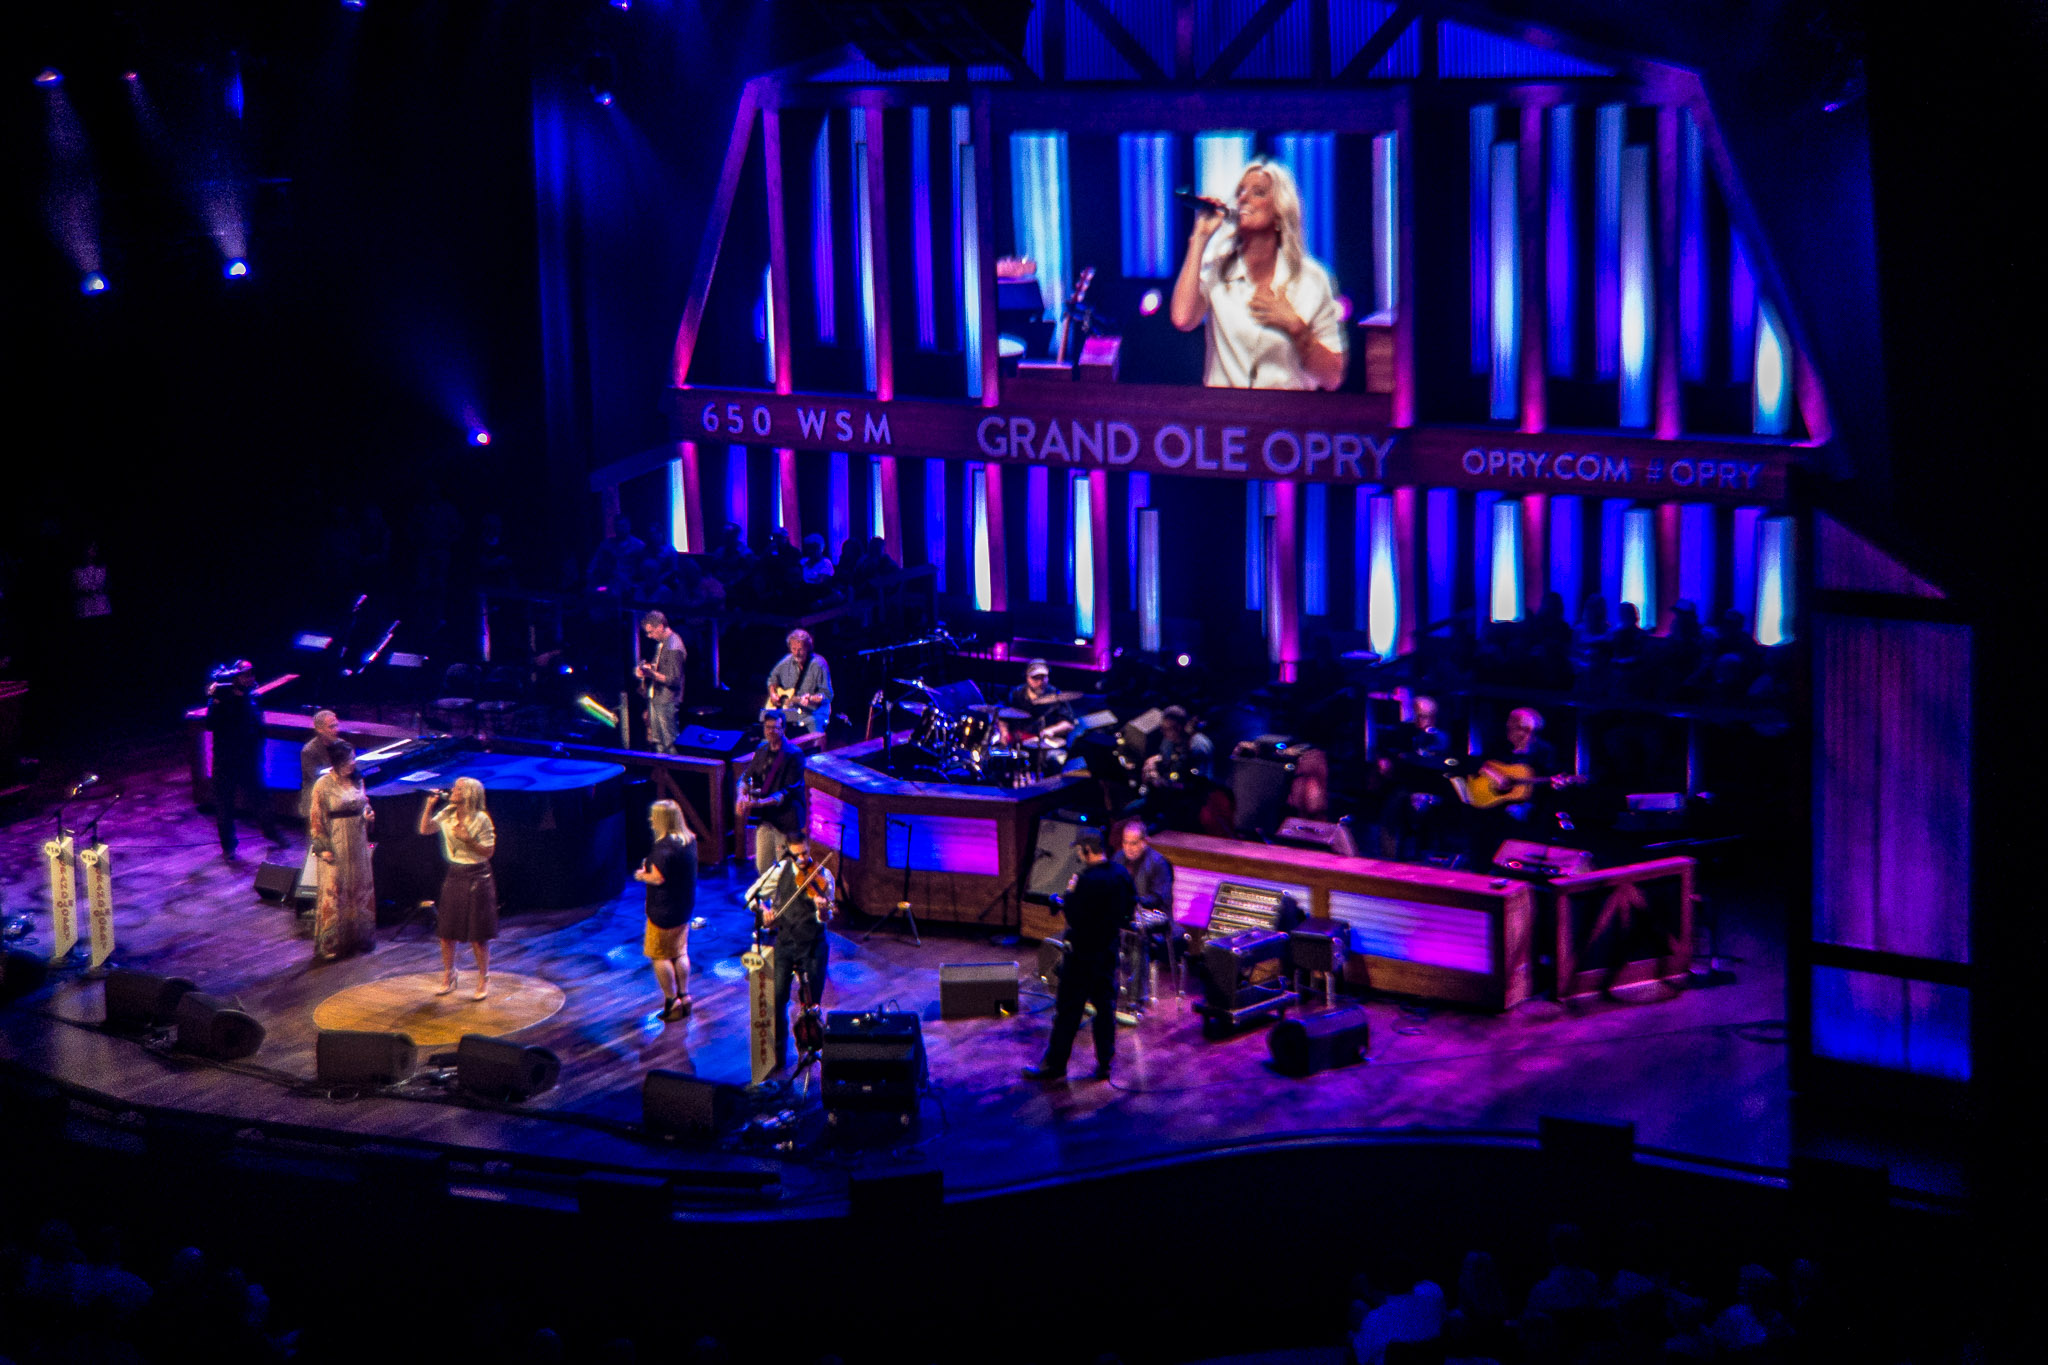 Artists Taking the Stage at the Grand Ole Opry House